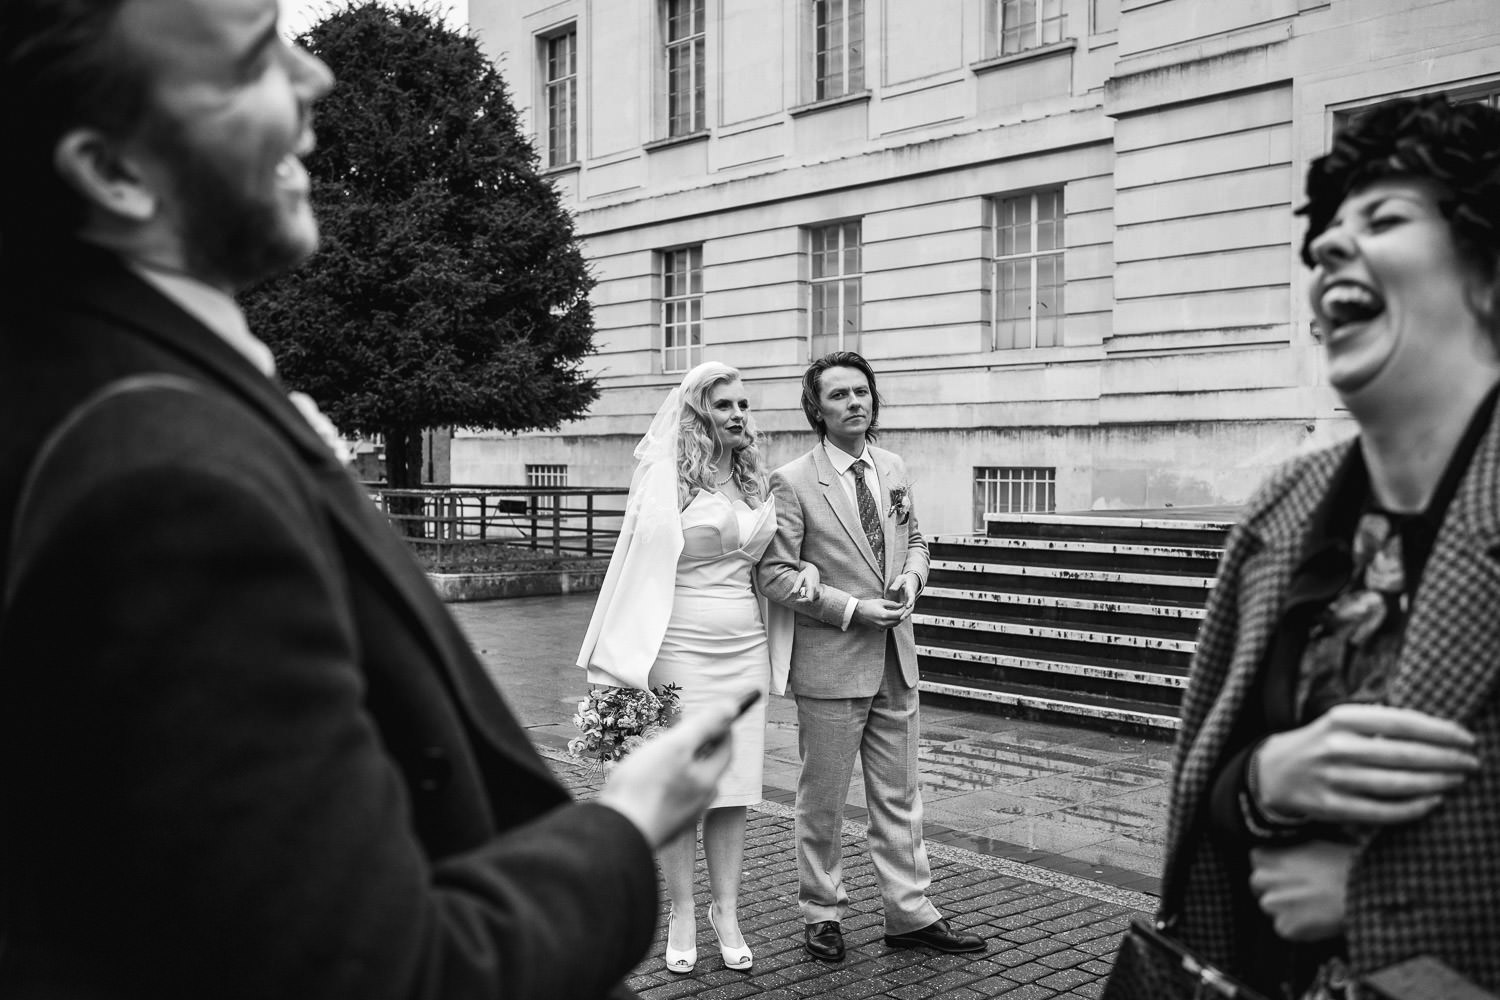 documentary street wedding photography